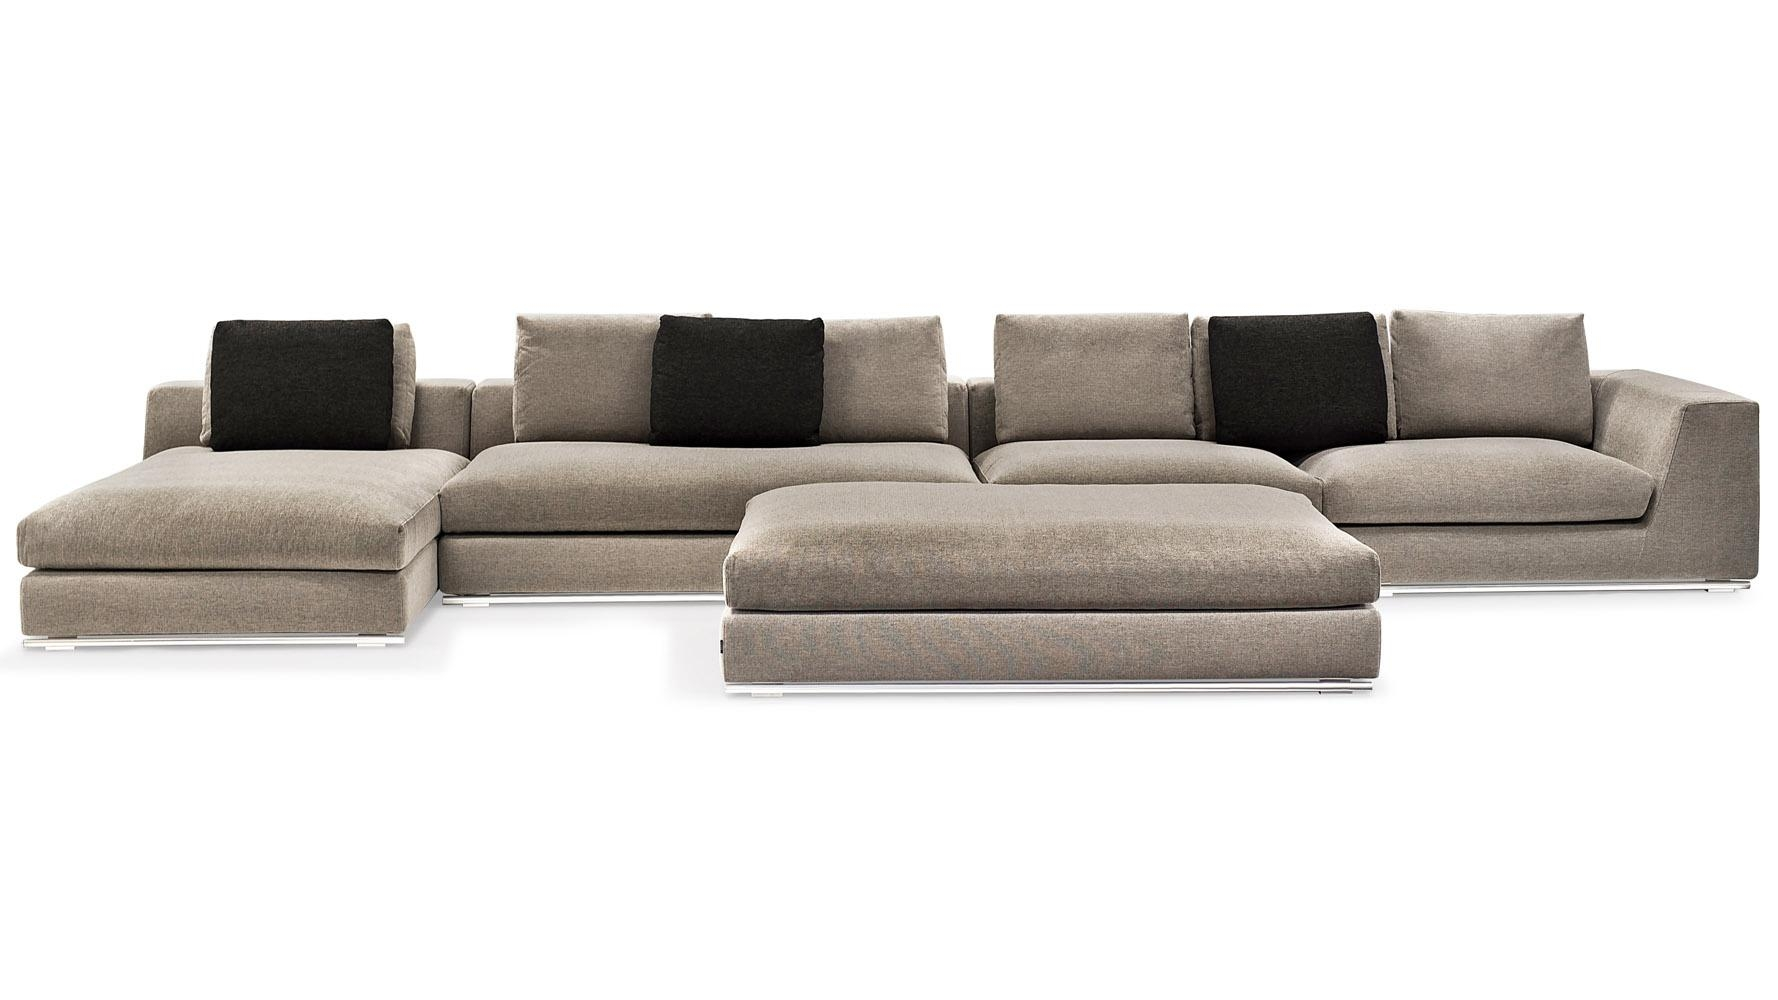 Comodo Sectional Sofa With Ottoman – Grey | Zuri Furniture With Armless Sectional Sofa (Image 4 of 15)